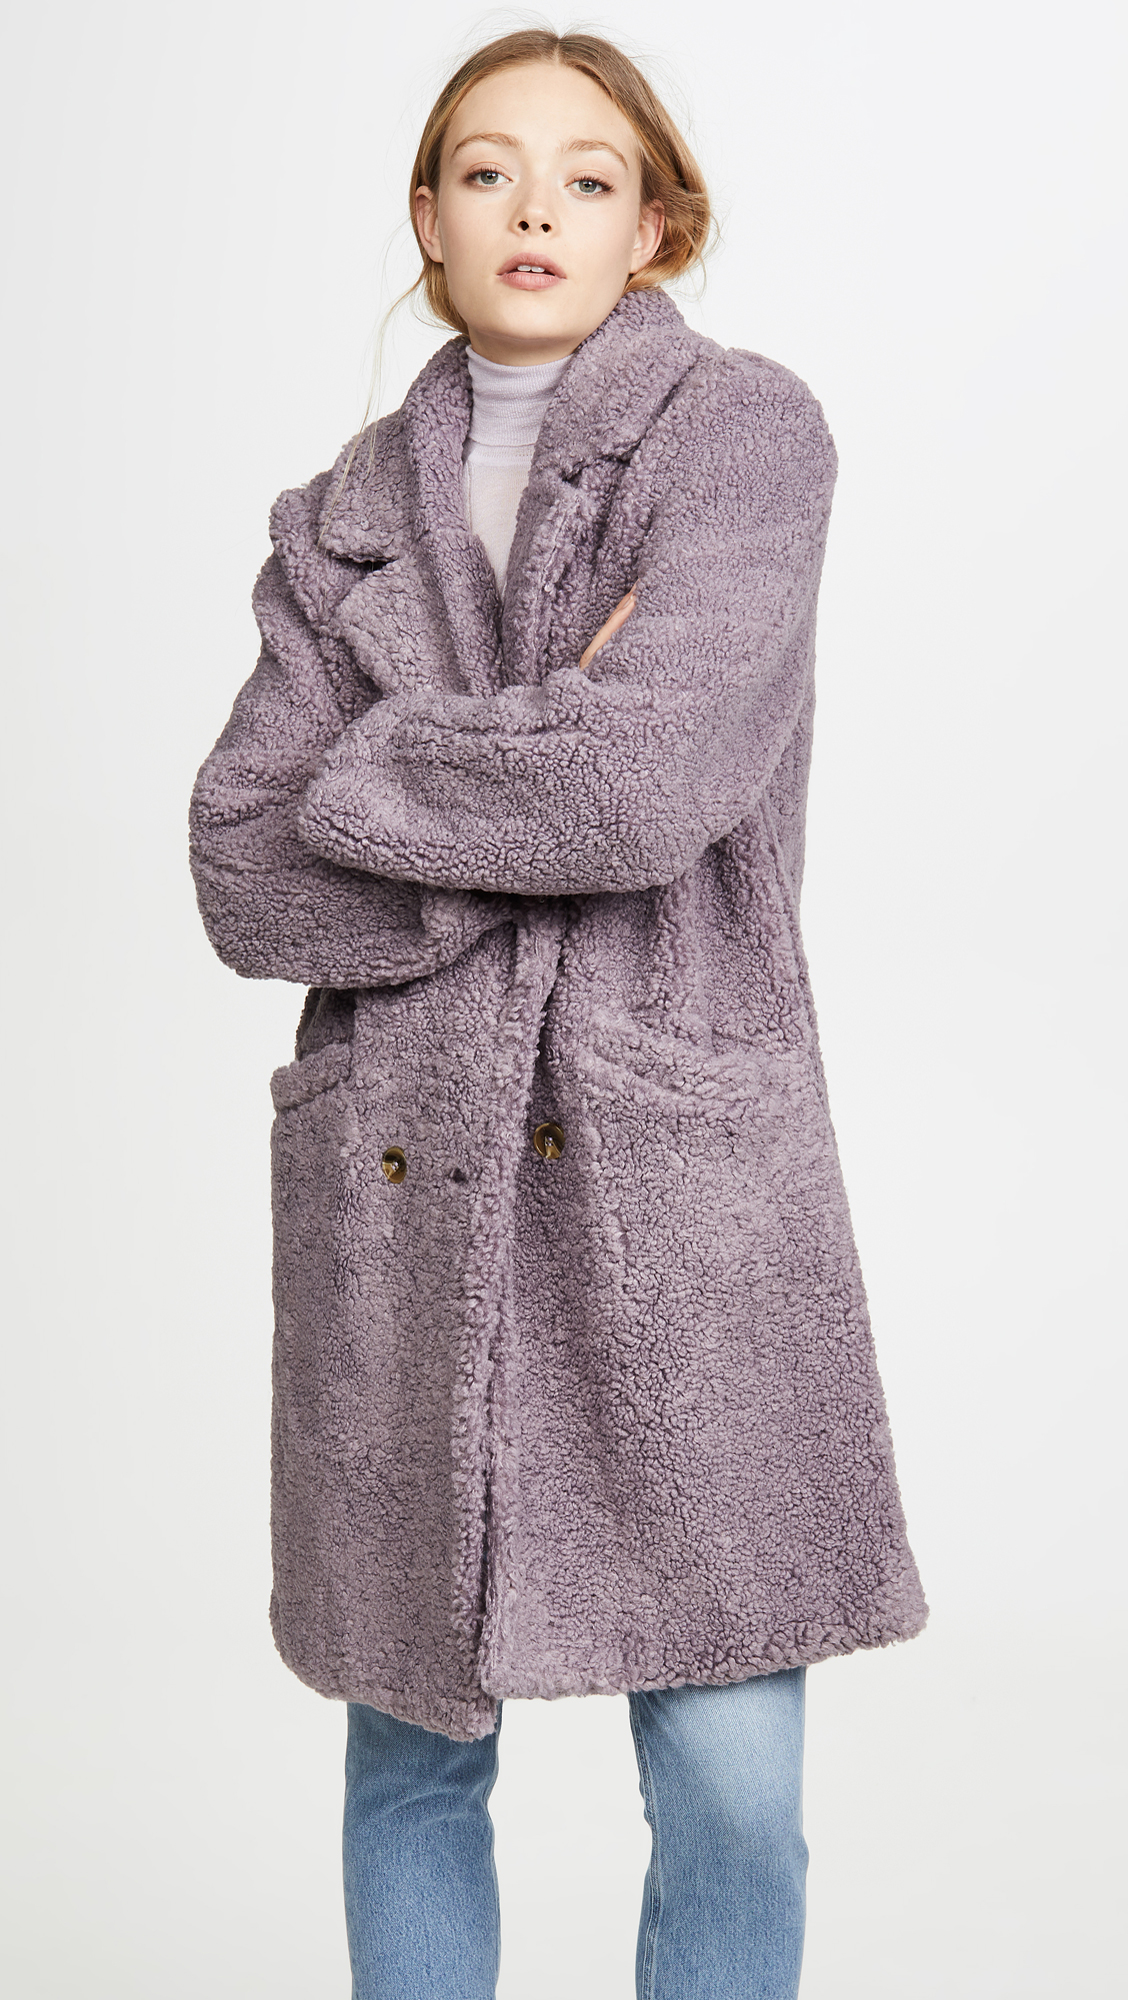 ASTR the Label Freddie Coat, Ruffled Apron, weekly finds